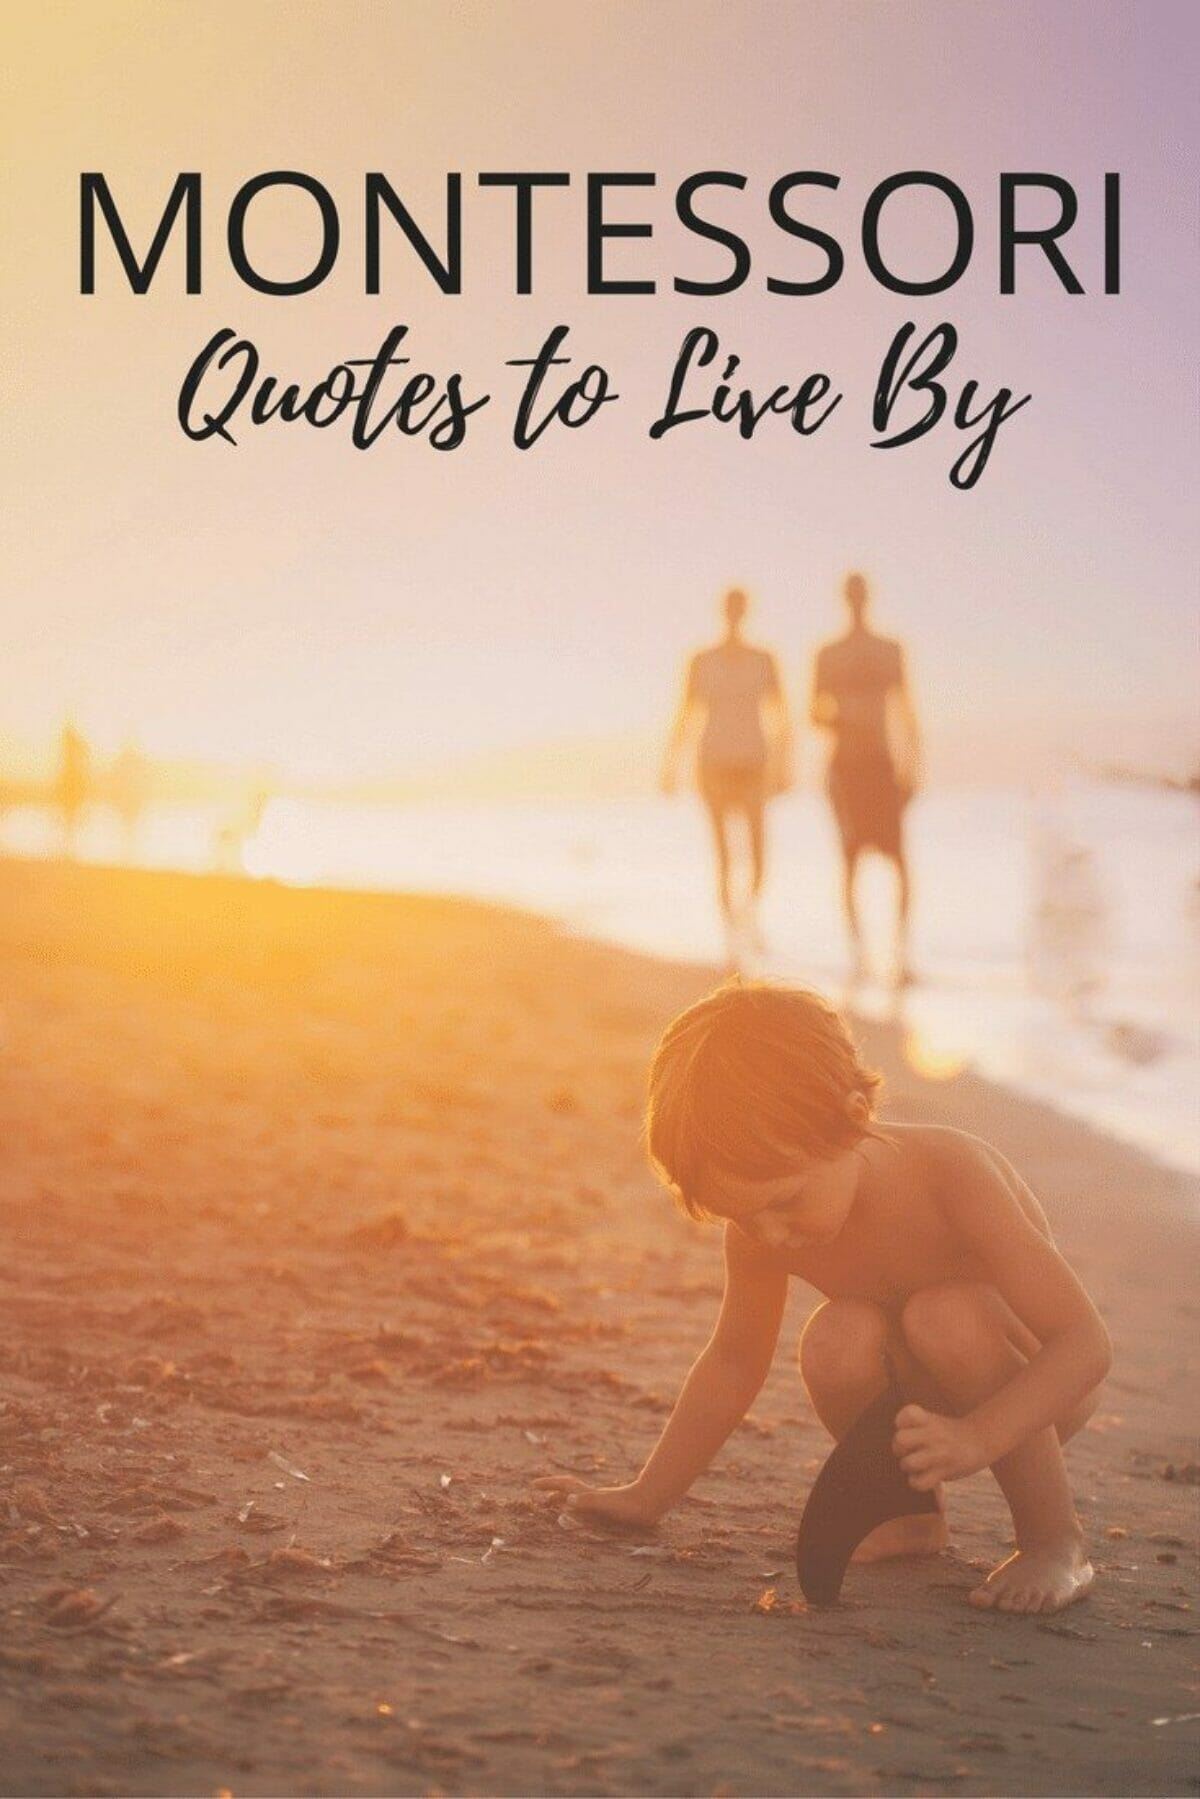 montessori quotes to live by in your every day